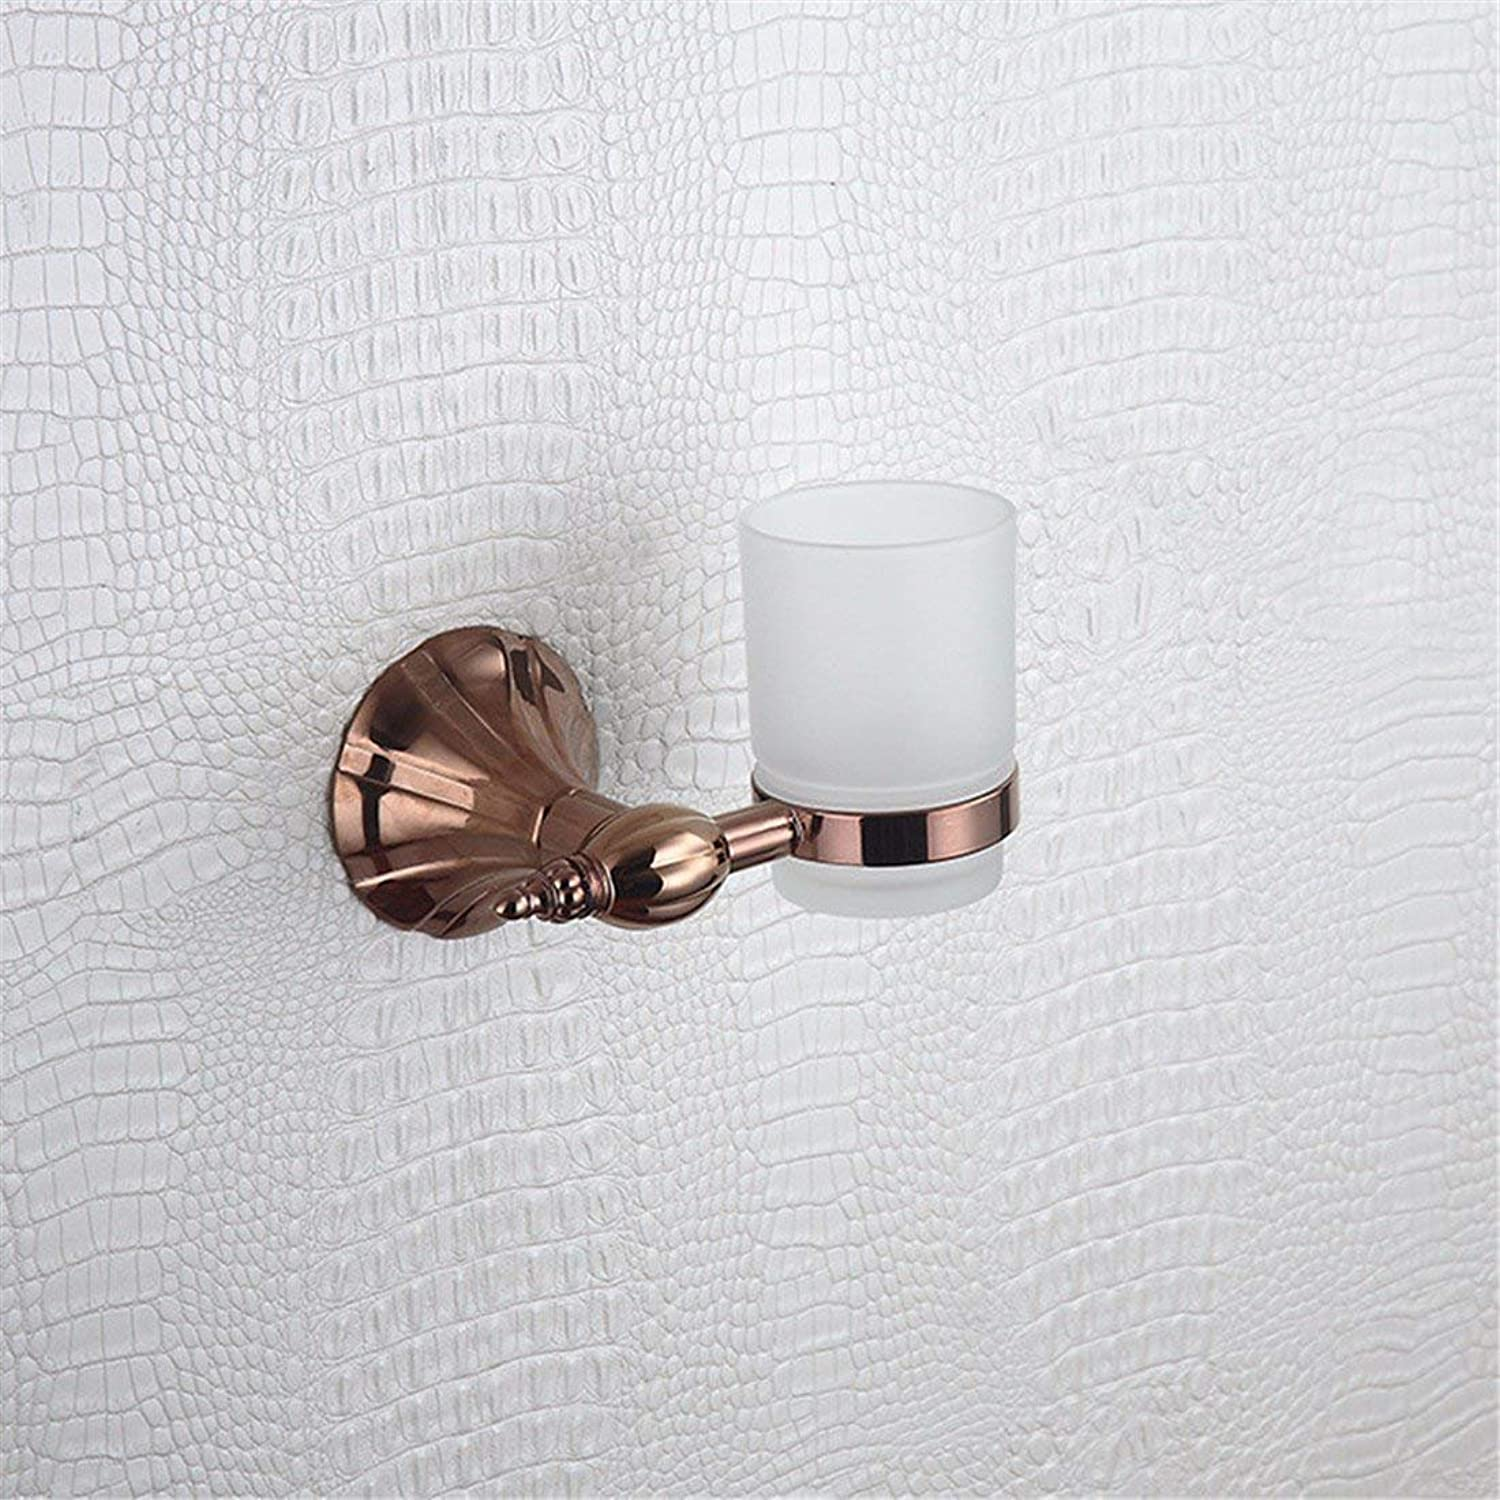 Accessories of European-Style Bathroom of Pink gold of Christmas Full Copper Base of The Petal, Dry-Towels, Single and Double Pole, Simple and Double Door Toothbrush,Single Cup